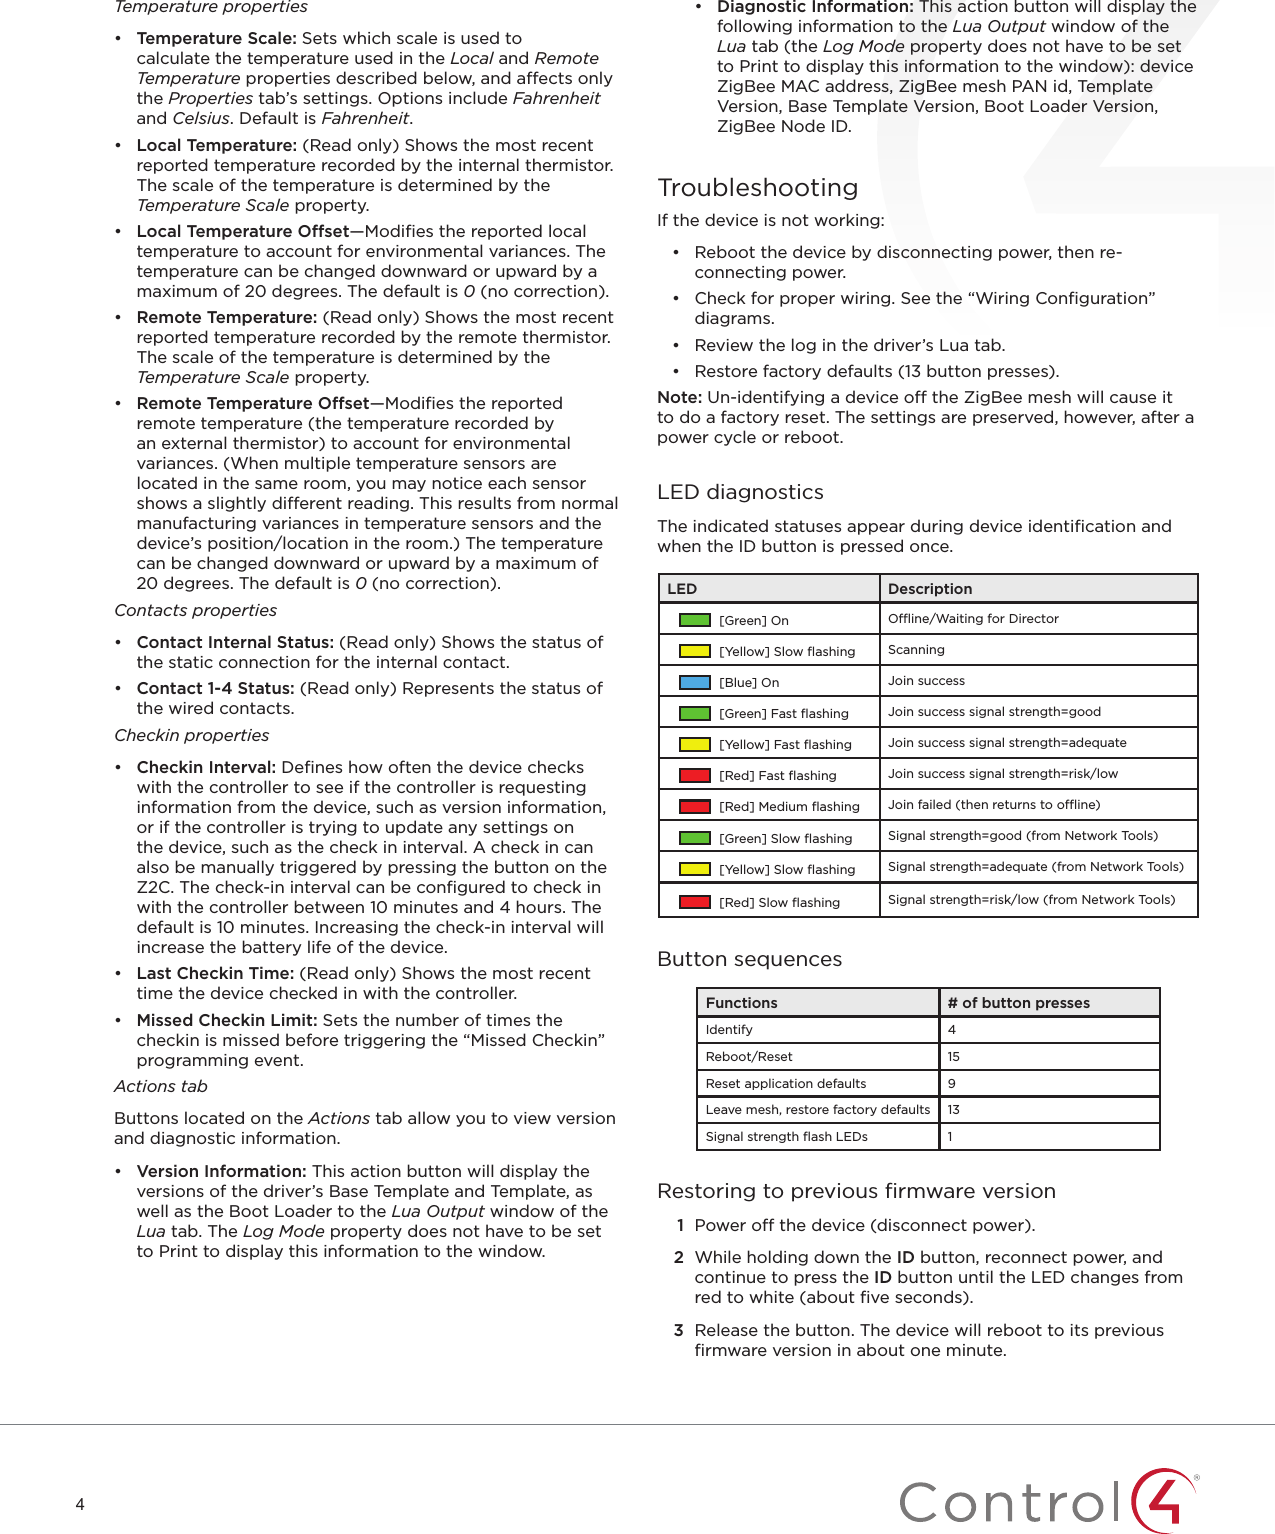 Control4 C4z2io Zigbee To Io Transceiver User Manual Fahrenheit Wiring Diagram 4temperature Properties Temperature Scale Sets Which Is Used Calculate The